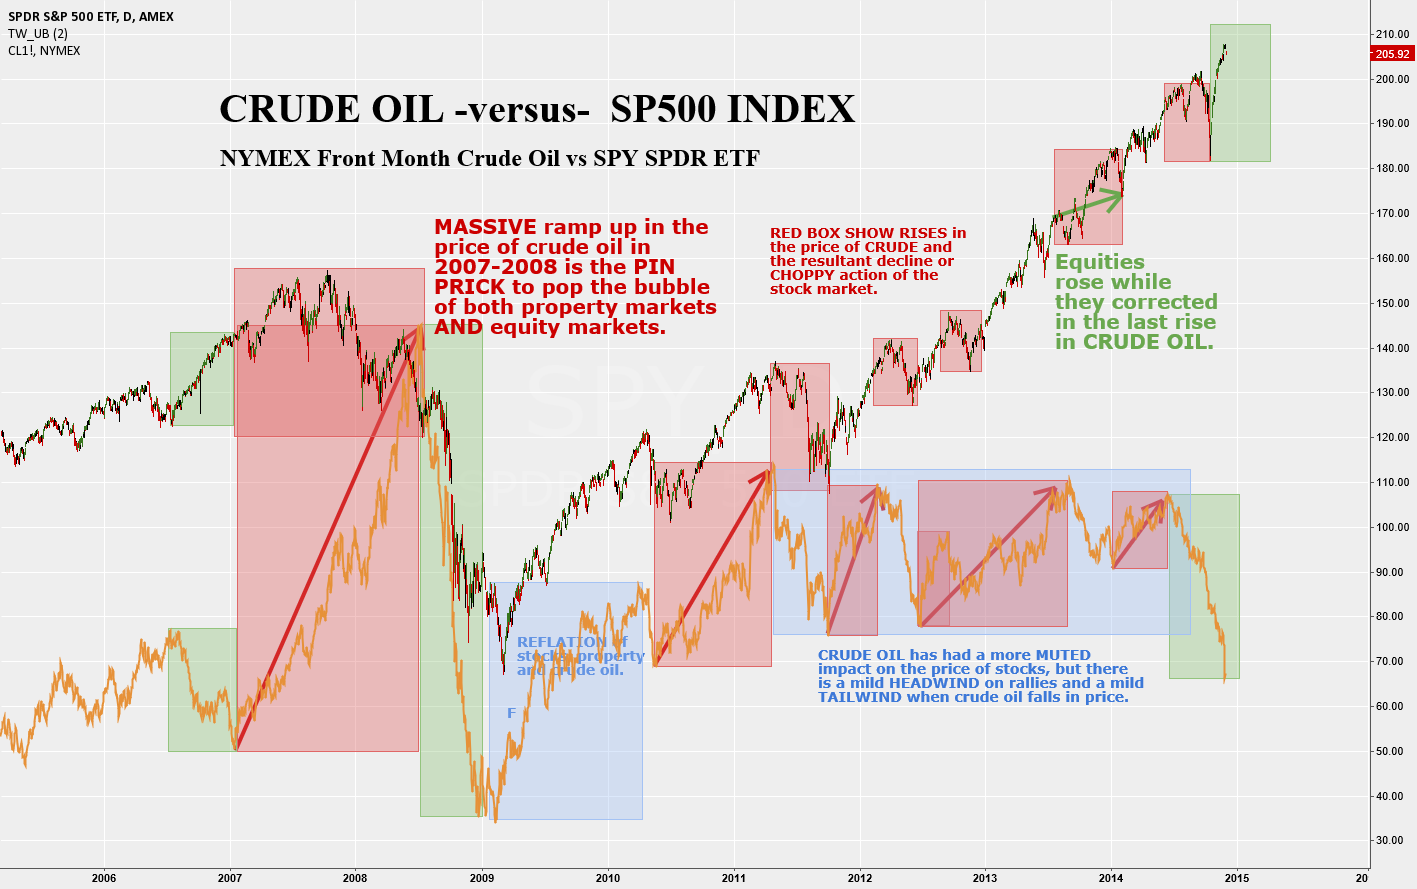 Crude Oil vs S&P500 Index - Headwinds vs Tailwinds